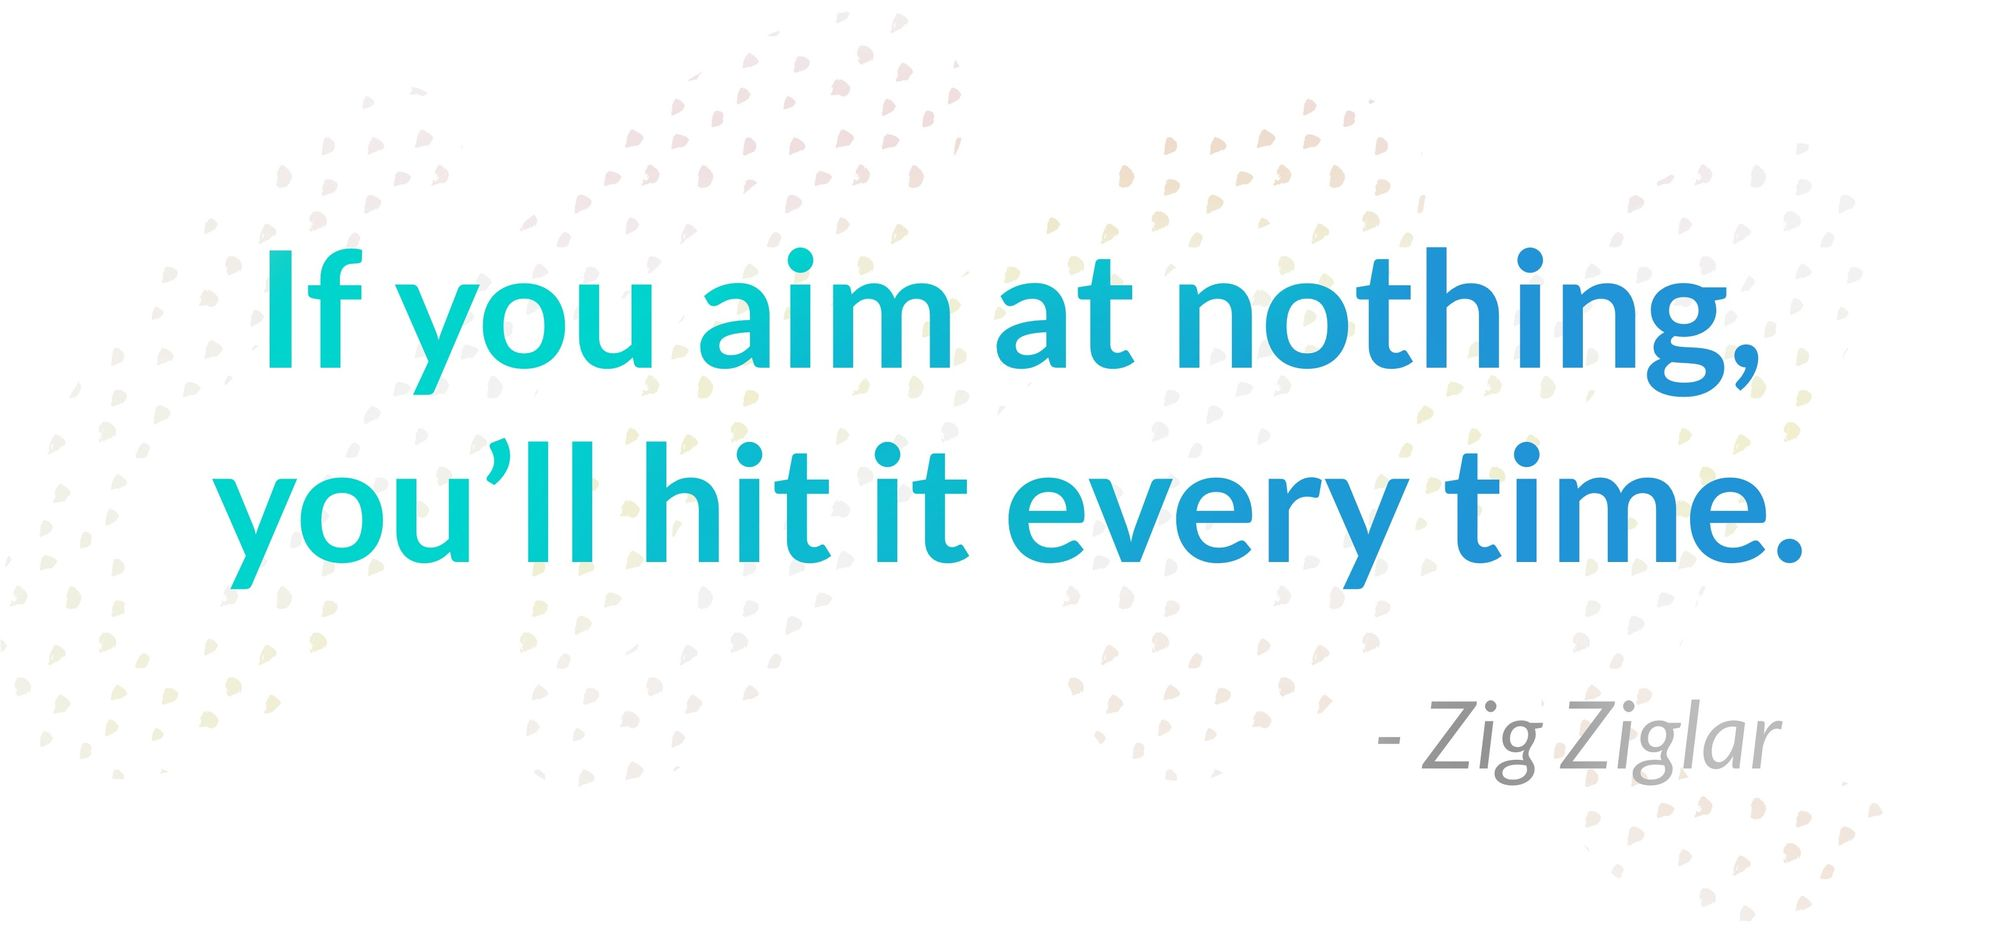 Zig Ziglar quotes: If you aim at nothing, you'll hit it every time.